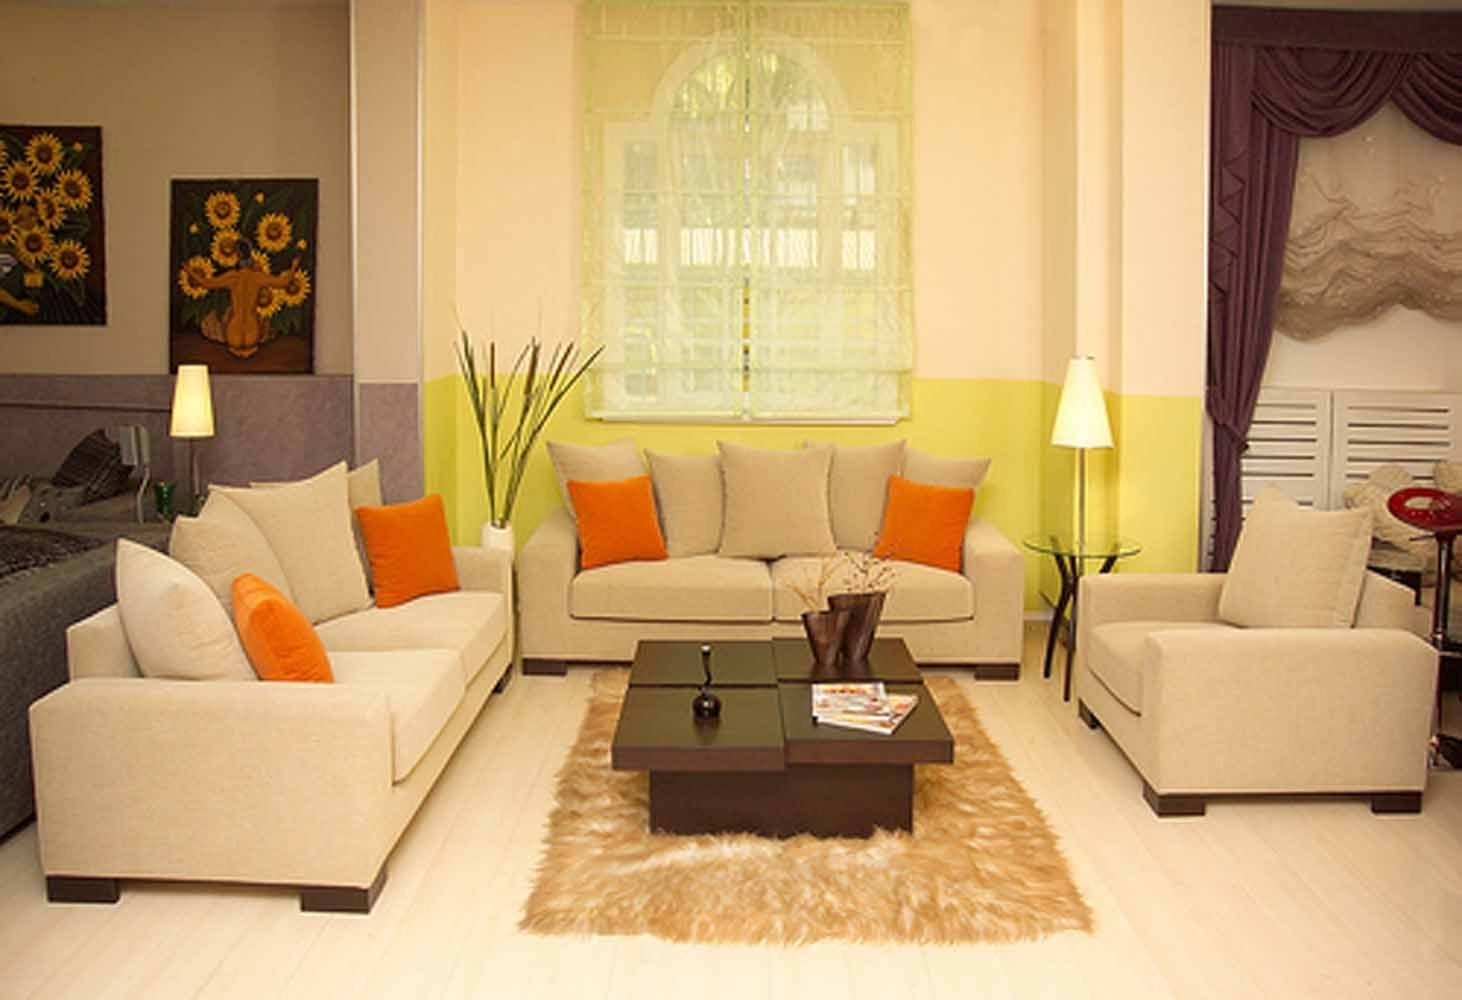 Well Known Cream Colored Sofas Inside Awesome Cream Colored Sofa 75 Sofa Design Ideas With Cream Colored (View 1 of 15)